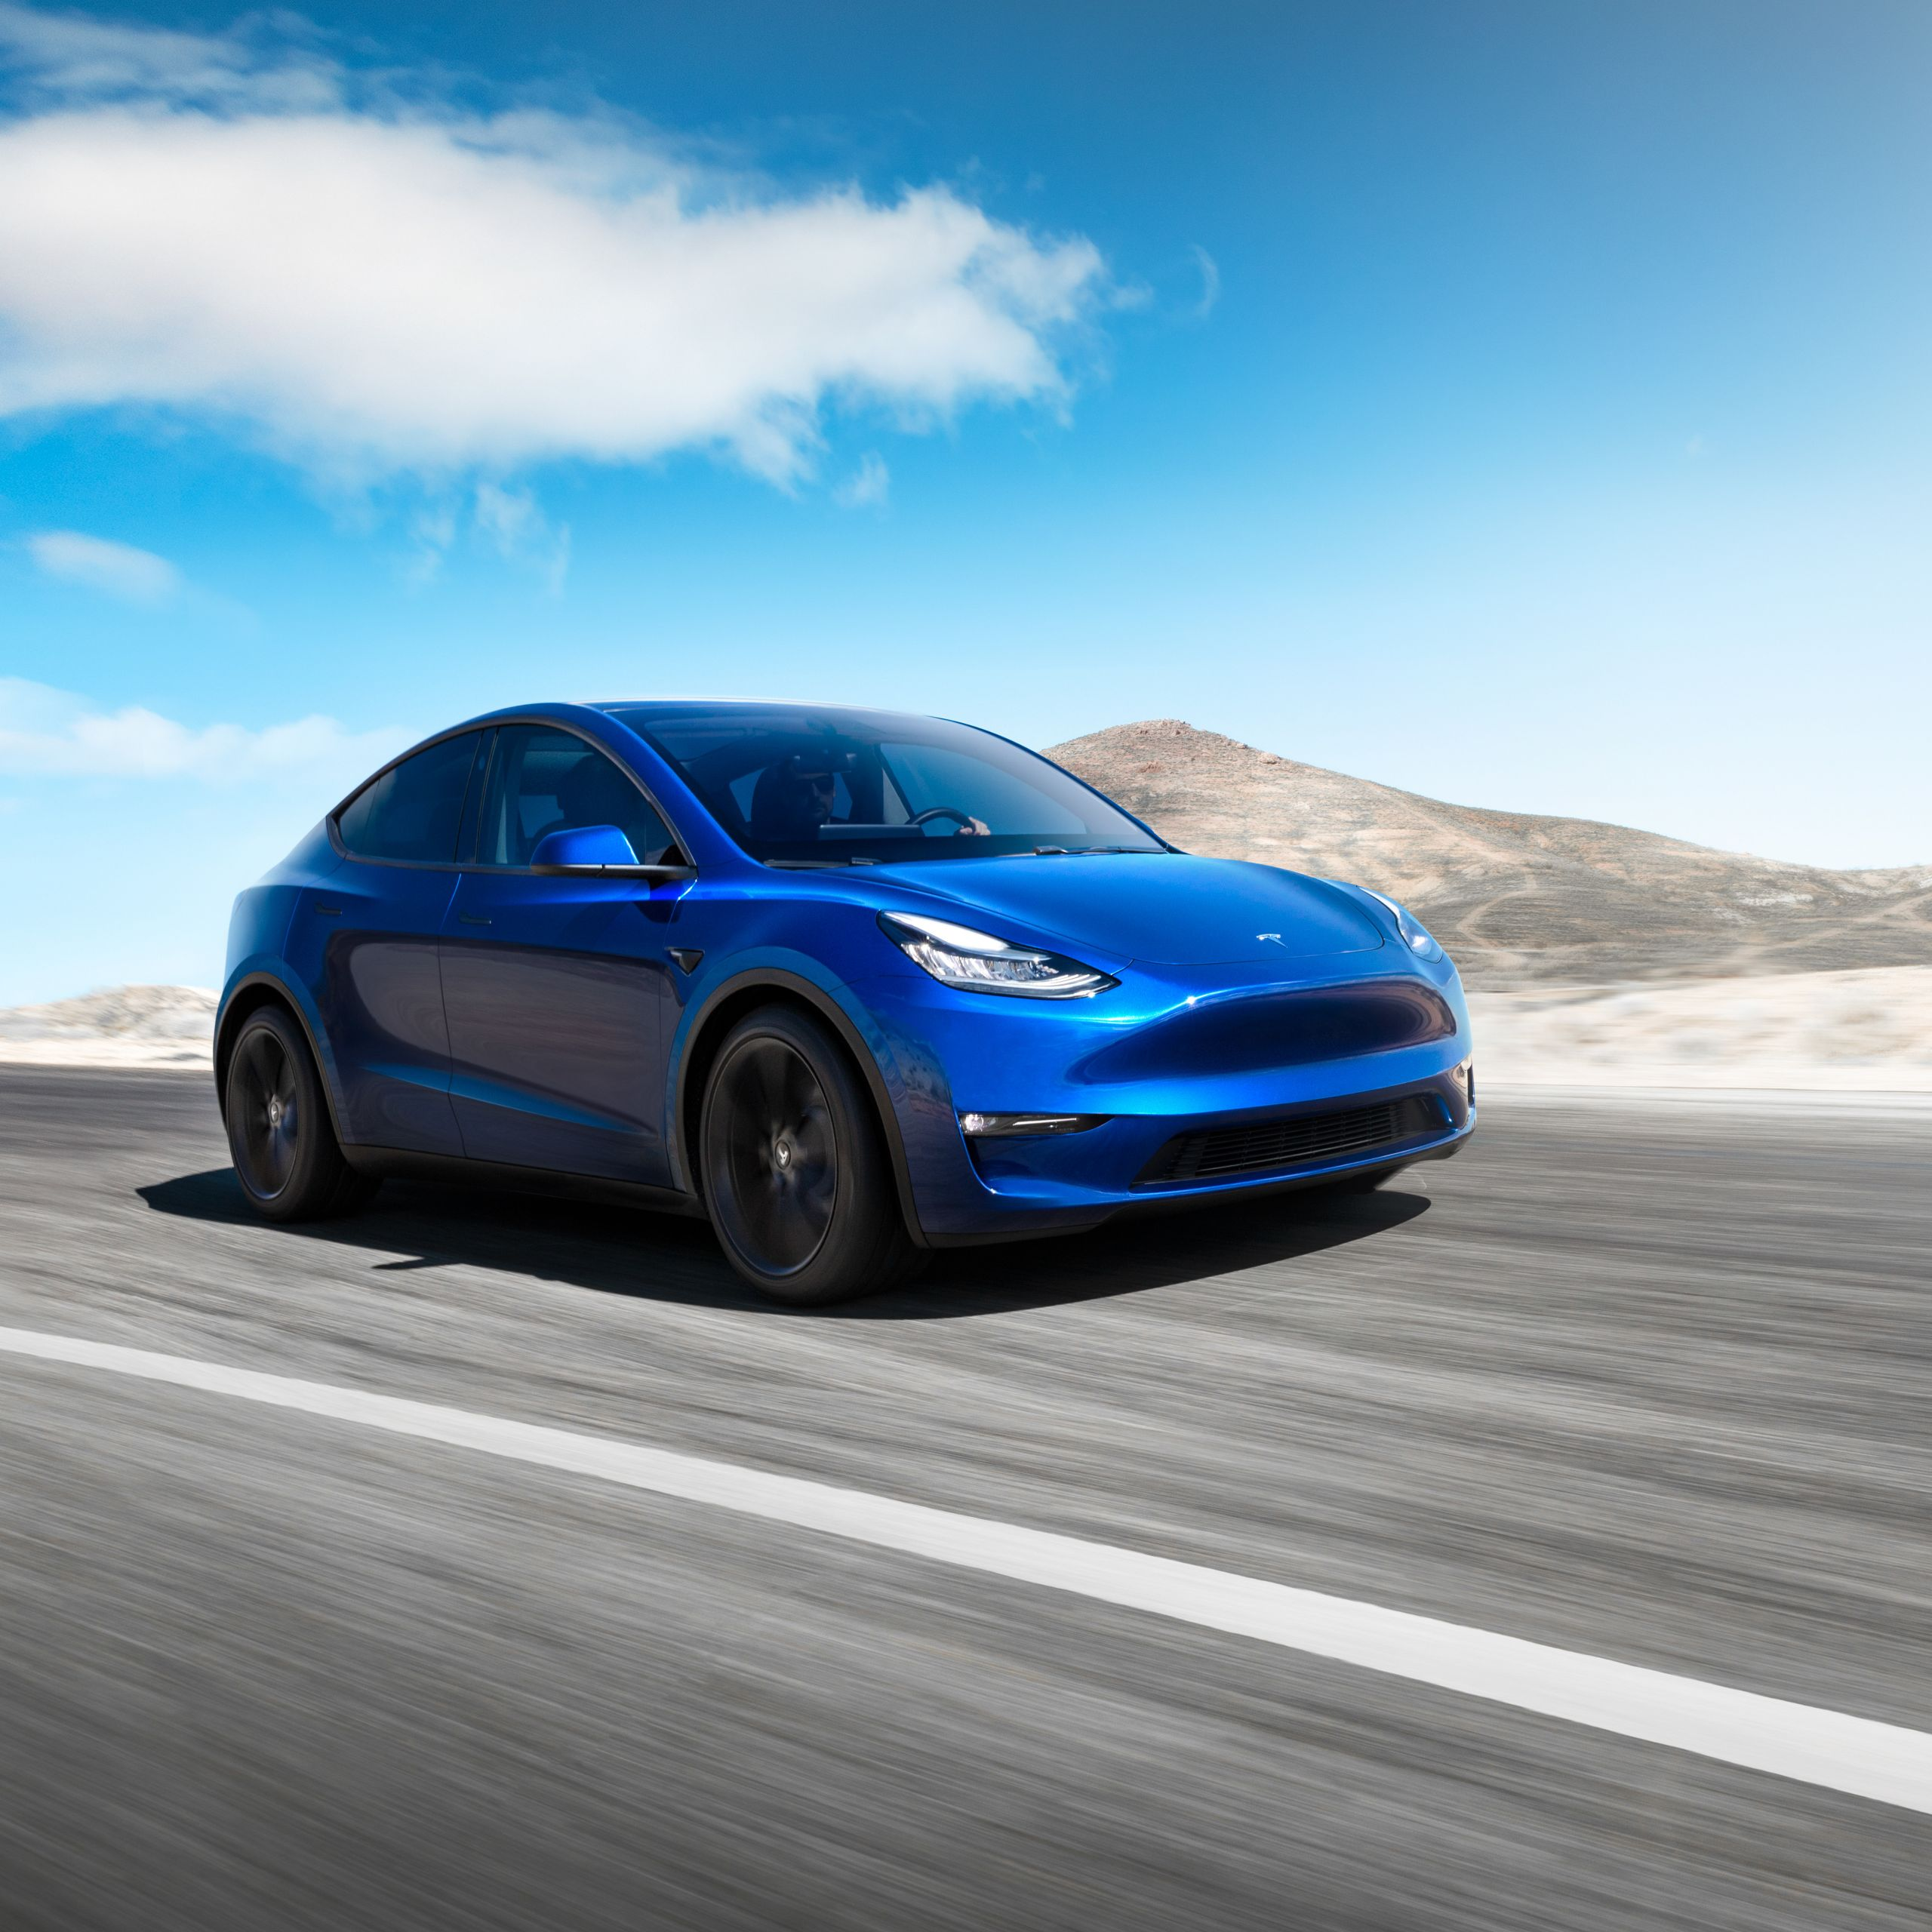 Tesla 3 Vs Y Fresh Tesla S Electric Car Lineup Your Guide to the Model S 3 X